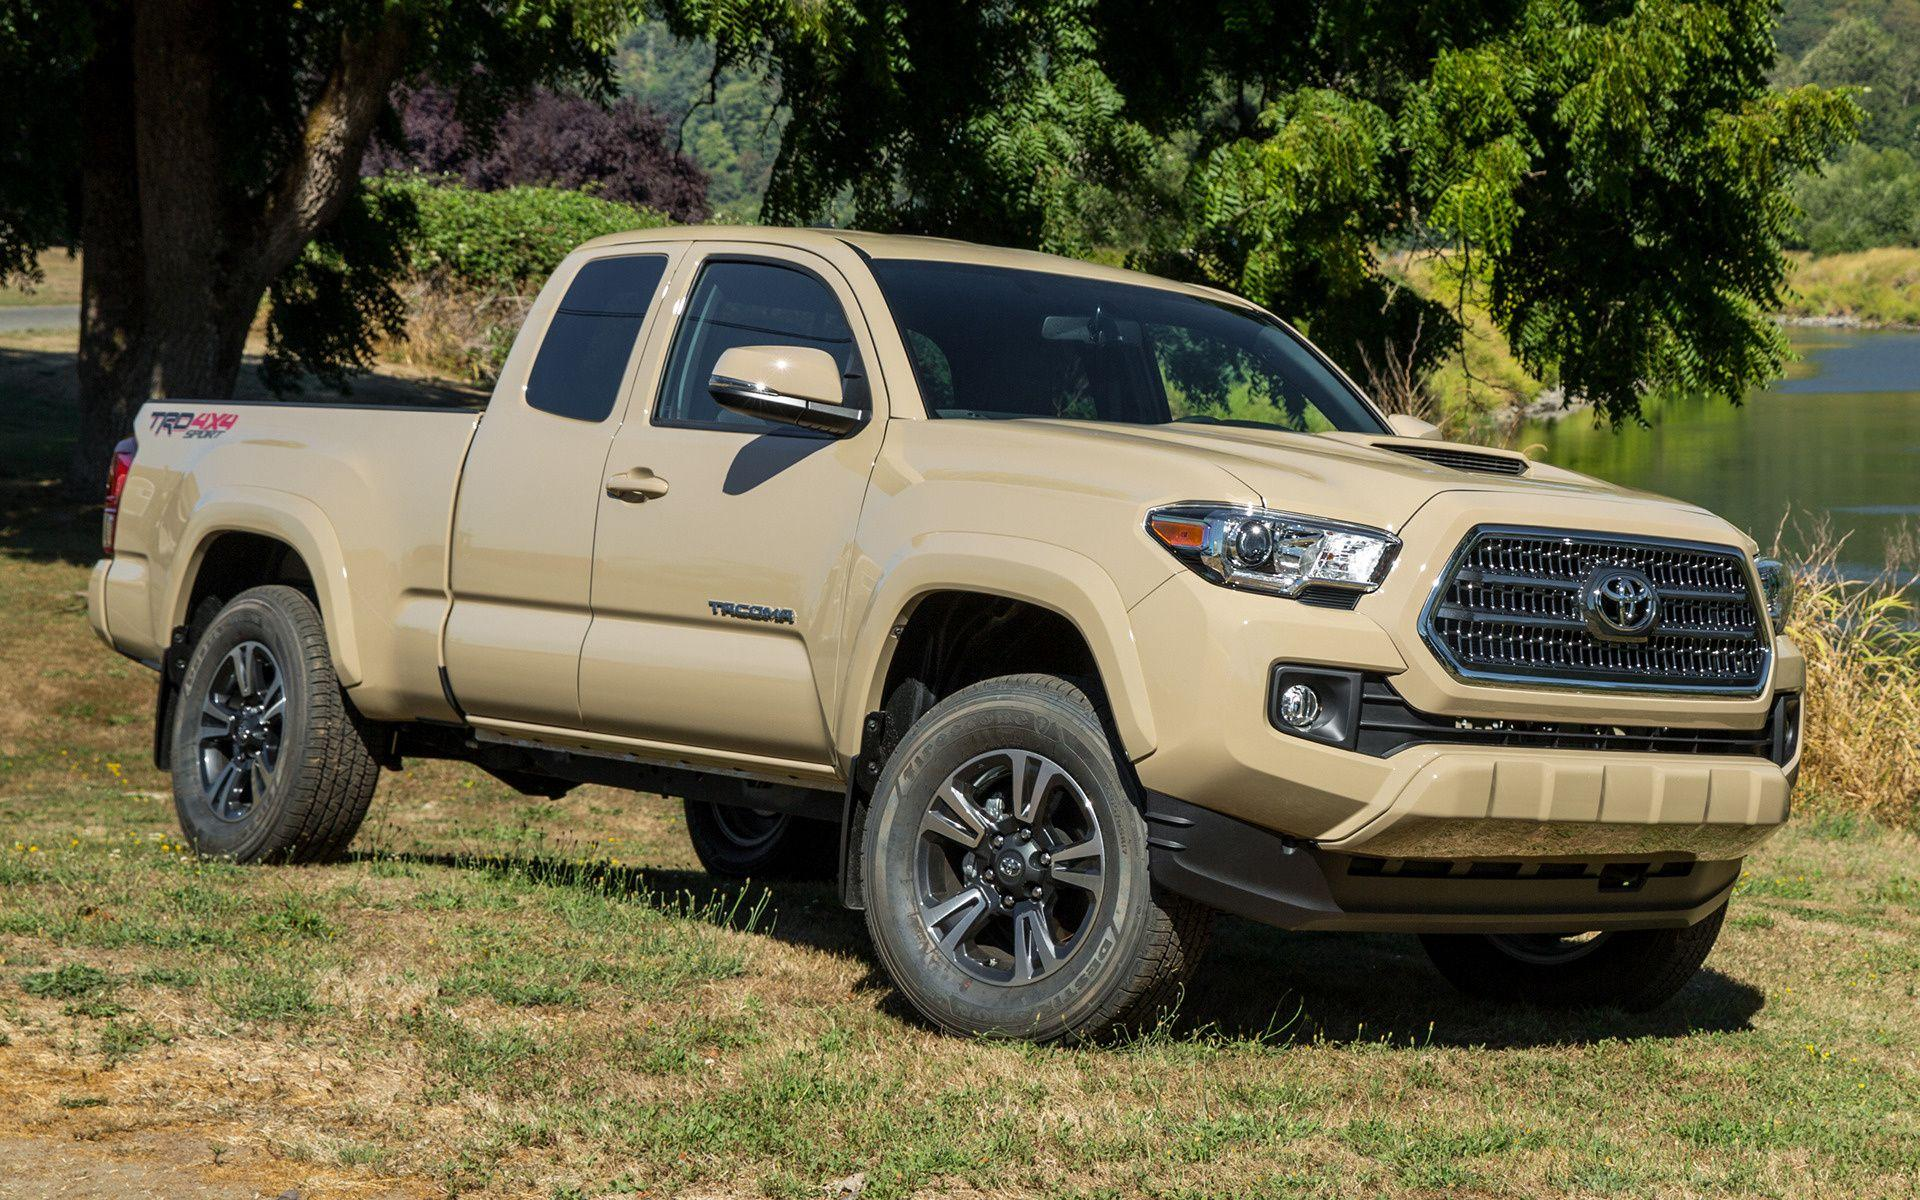 Toyota Tacoma TRD Sport Access Cab (2016) Wallpapers and HD Images ...